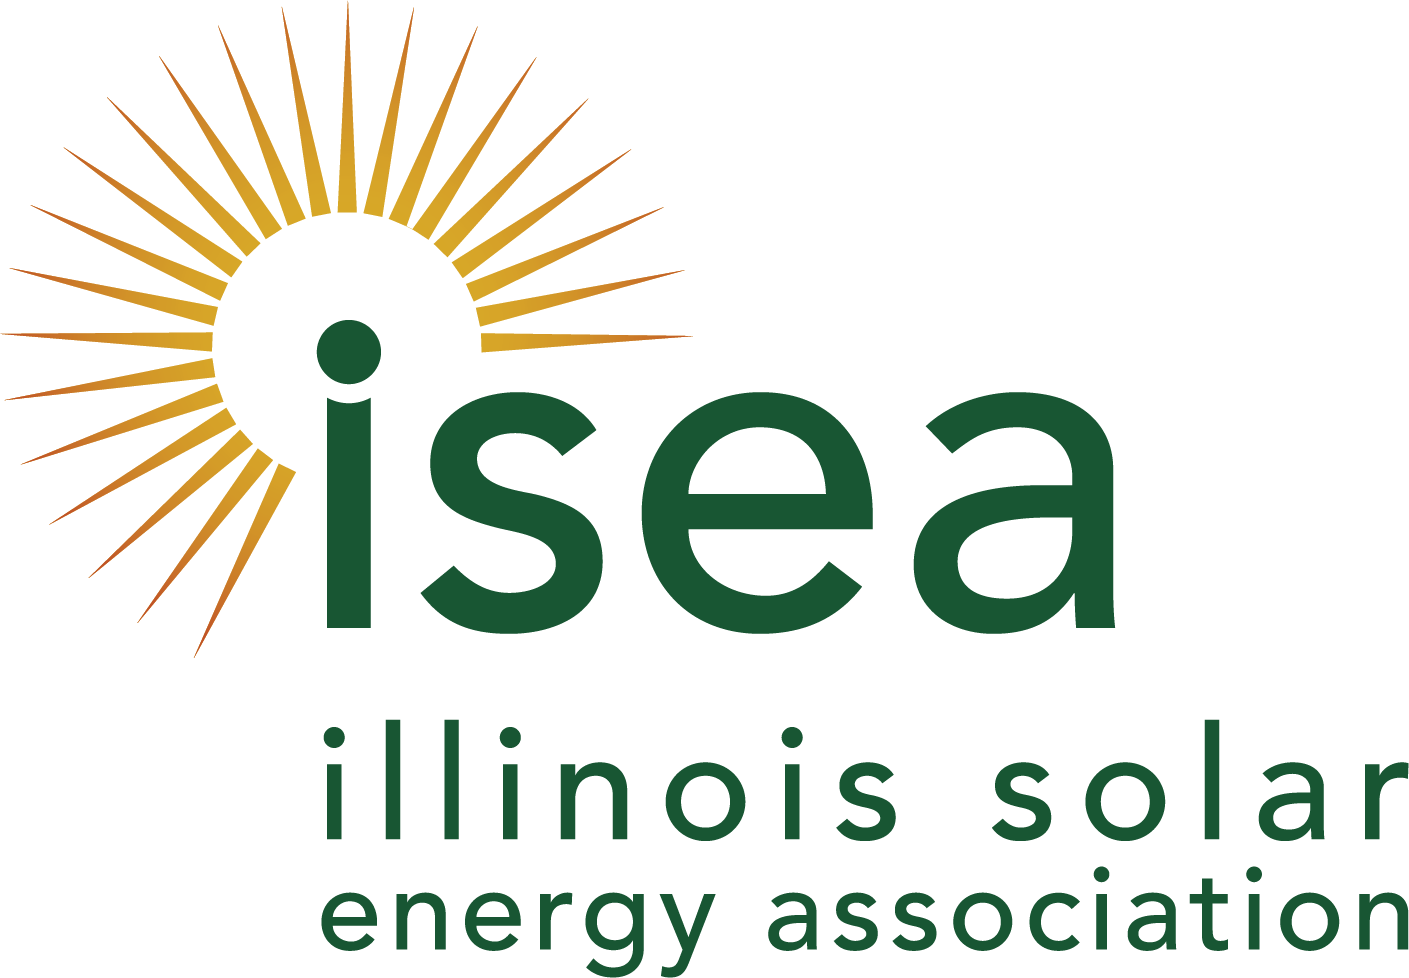 Logo of Illinois Solar Energy Association